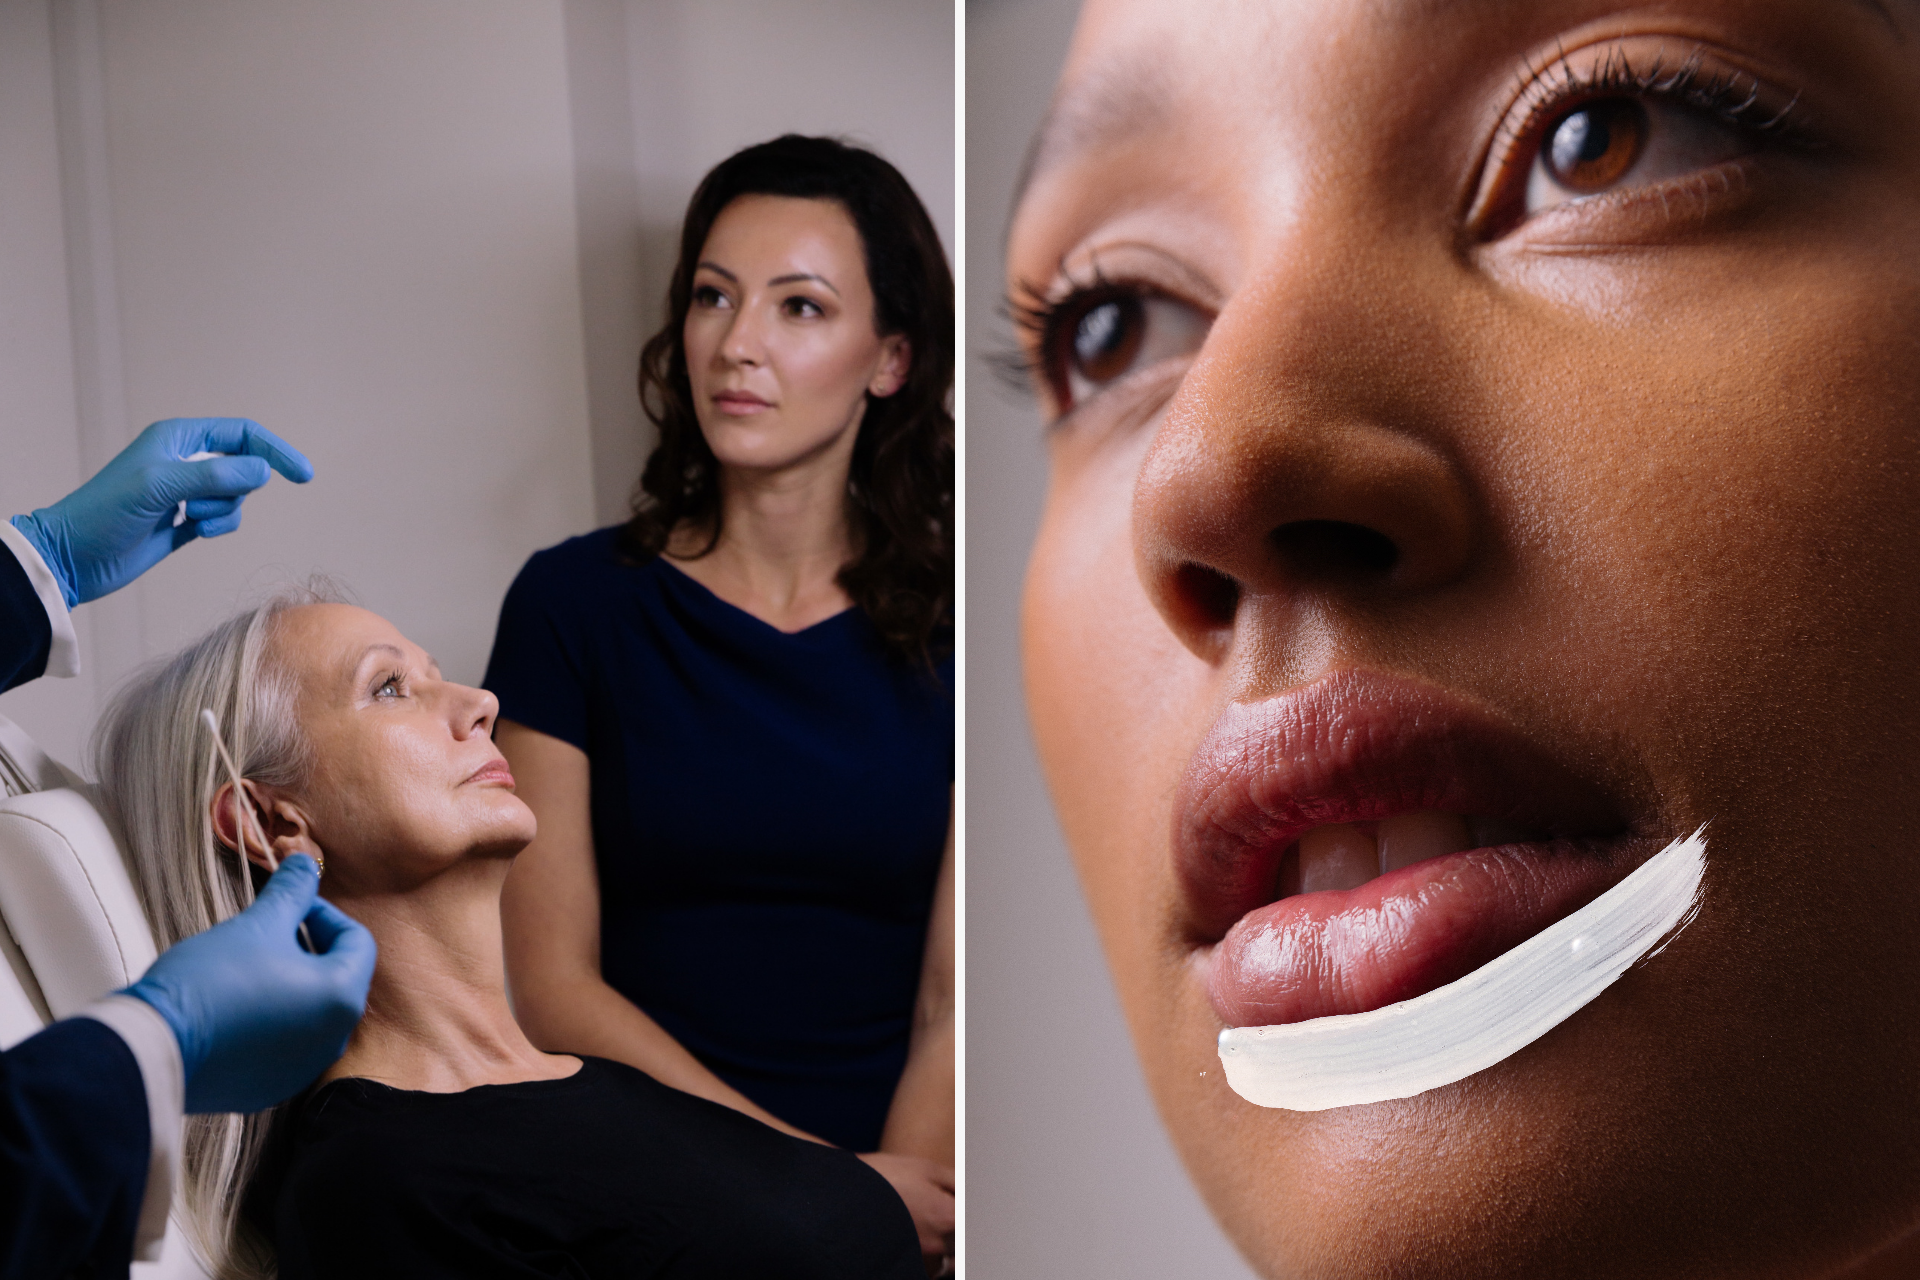 A split image. Left side showing woman in chair, cosmetic consolation. Right side shows woman's face close up with brush stroke lining lips. Graphic Design by Barefaced Studios, design agency Islington, for Harley Academy.